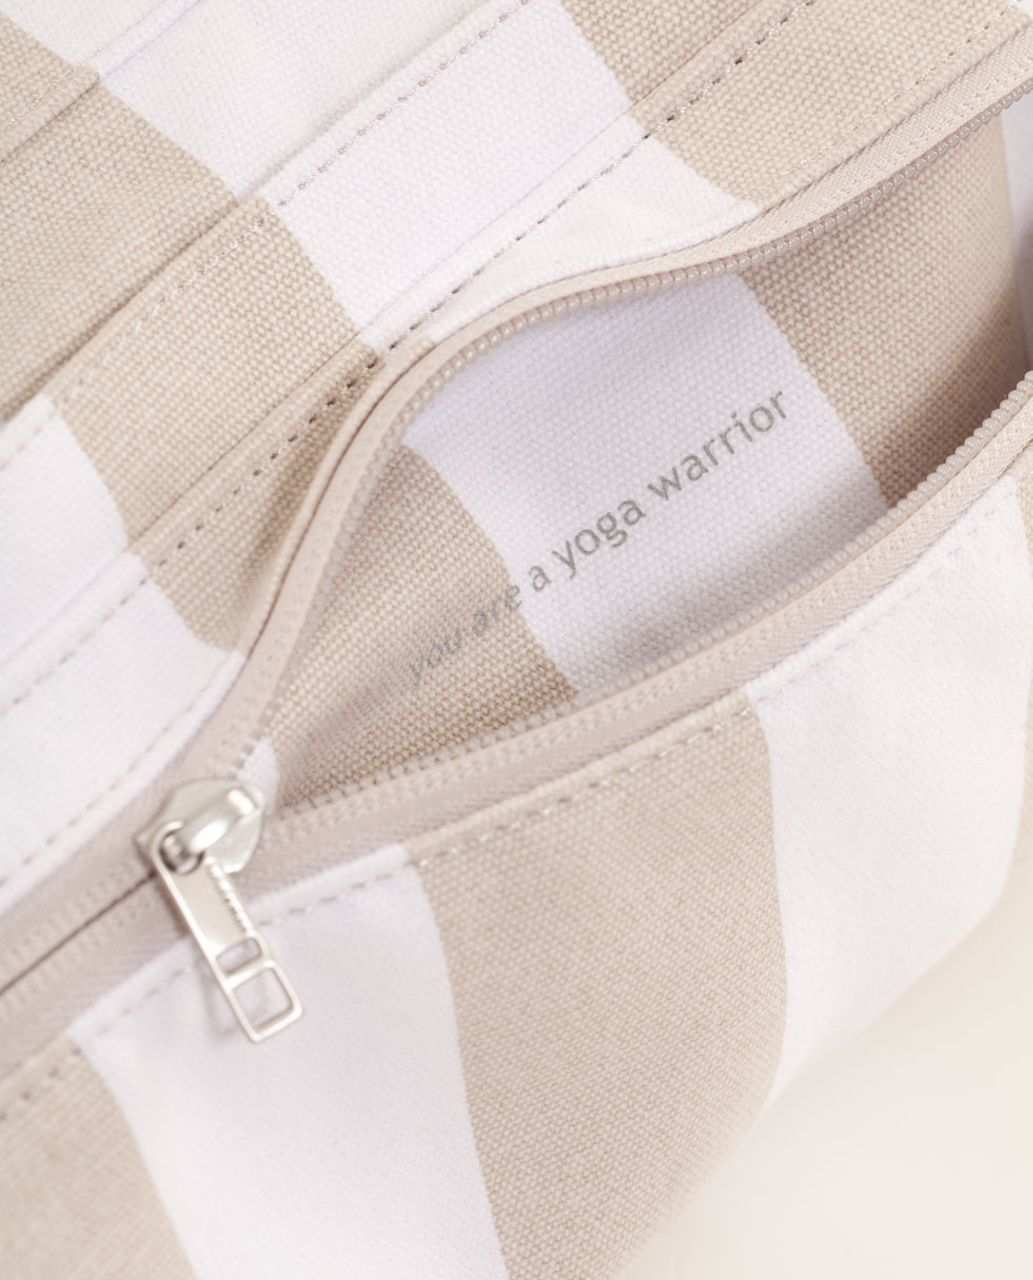 Lululemon Namaste Yoga Tote IV *Canvas - Beach Stripe Dune